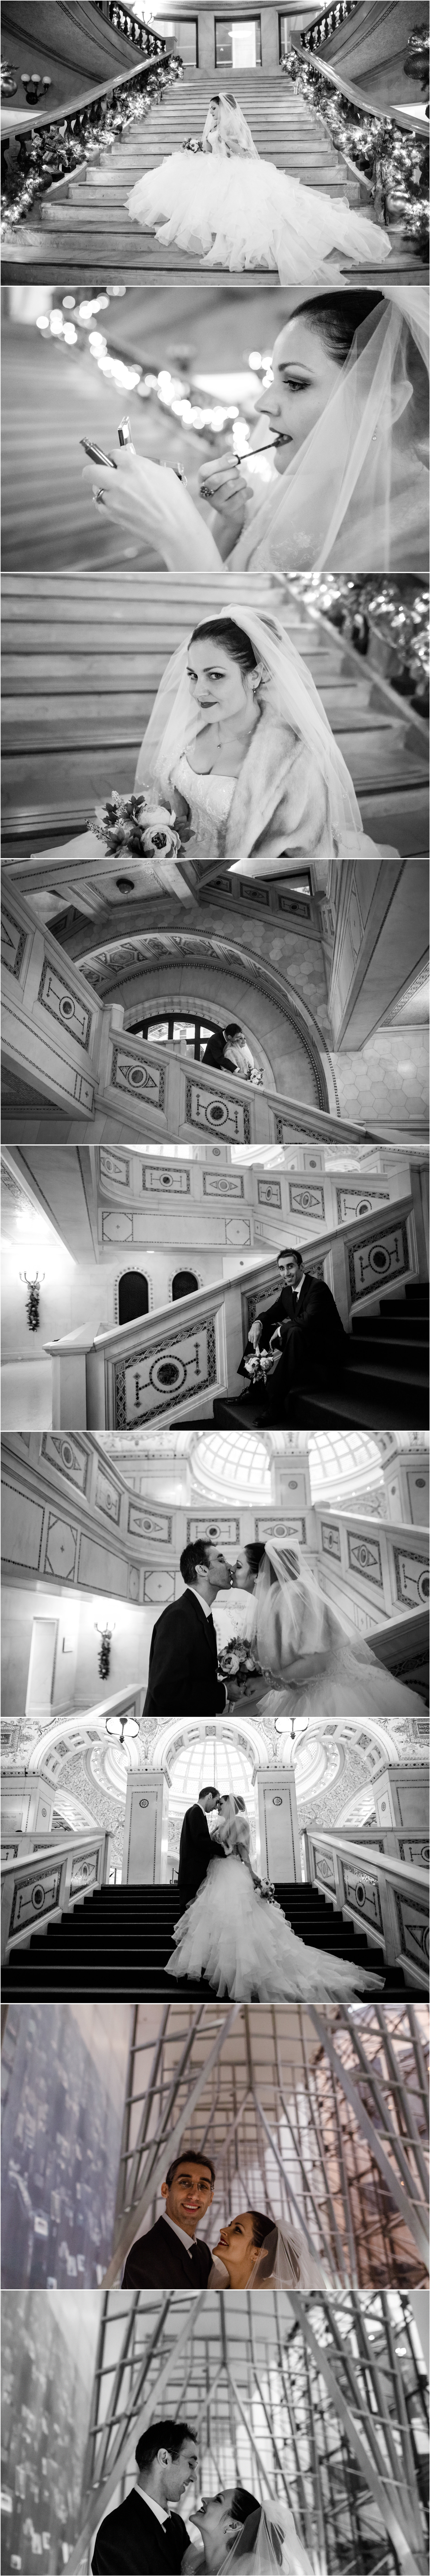 jenny grimm chicago cultural center lifestyle elopement photography